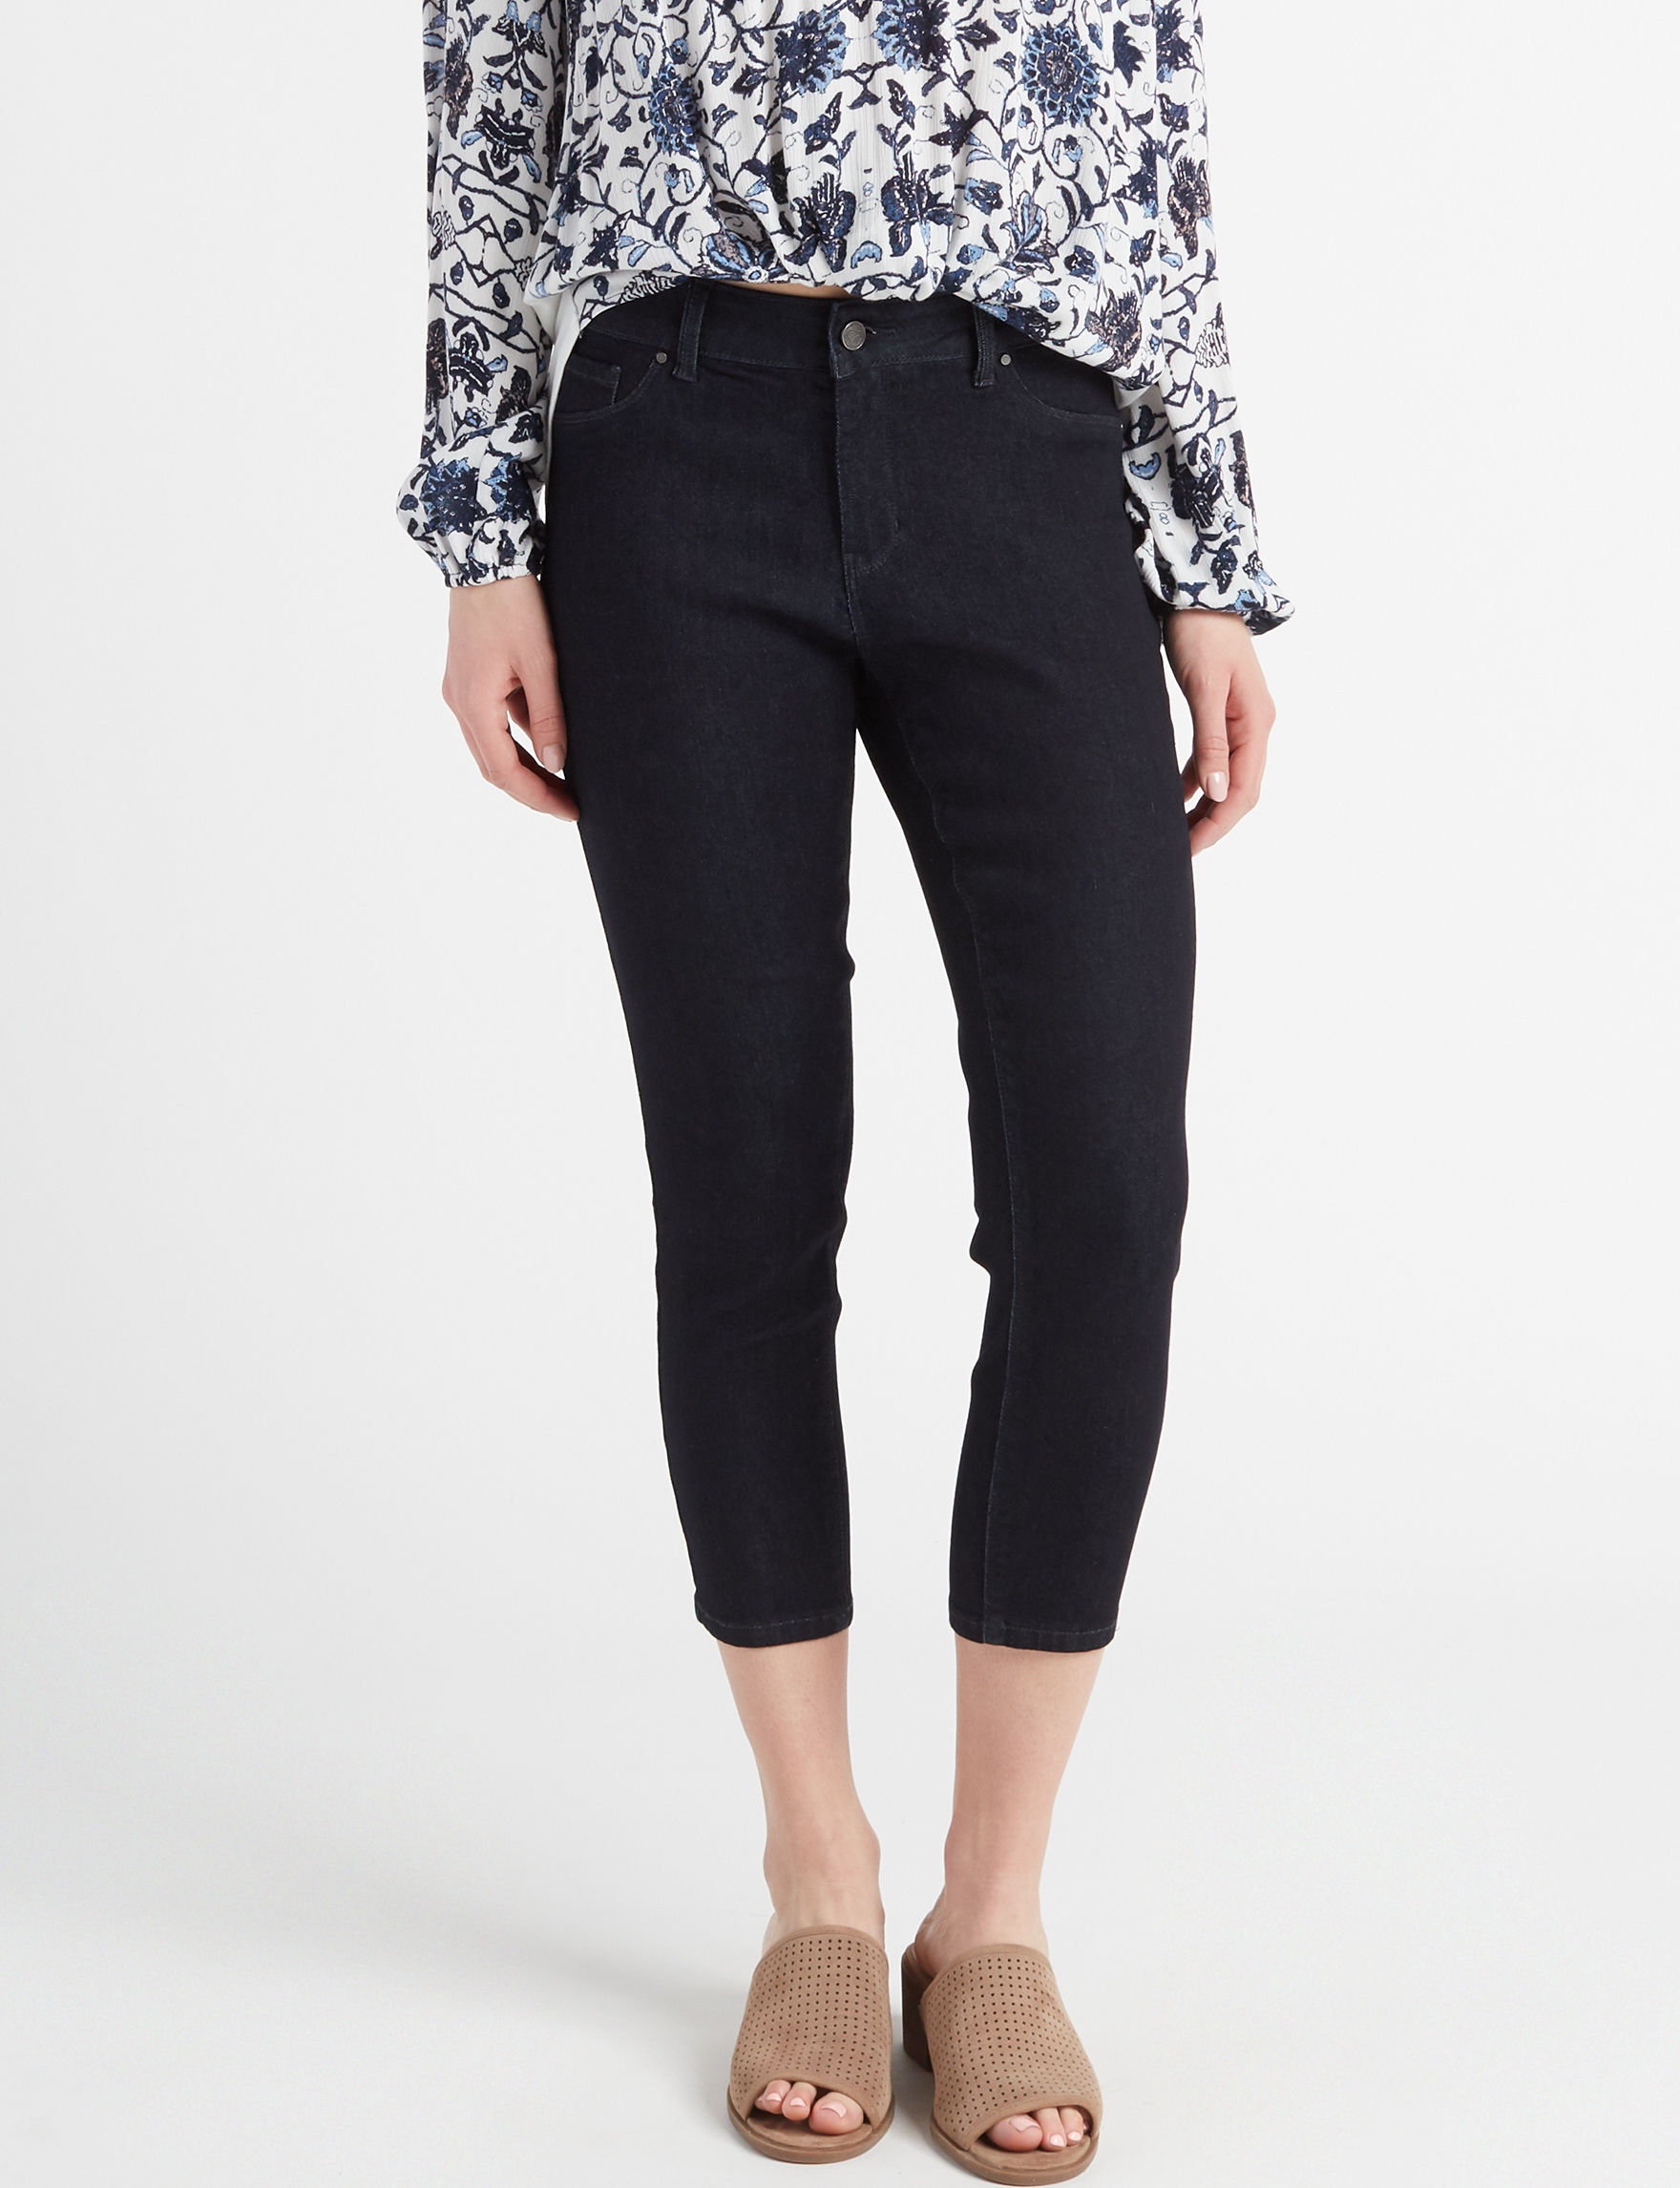 Signature Studio Dark Blue Capris & Crops